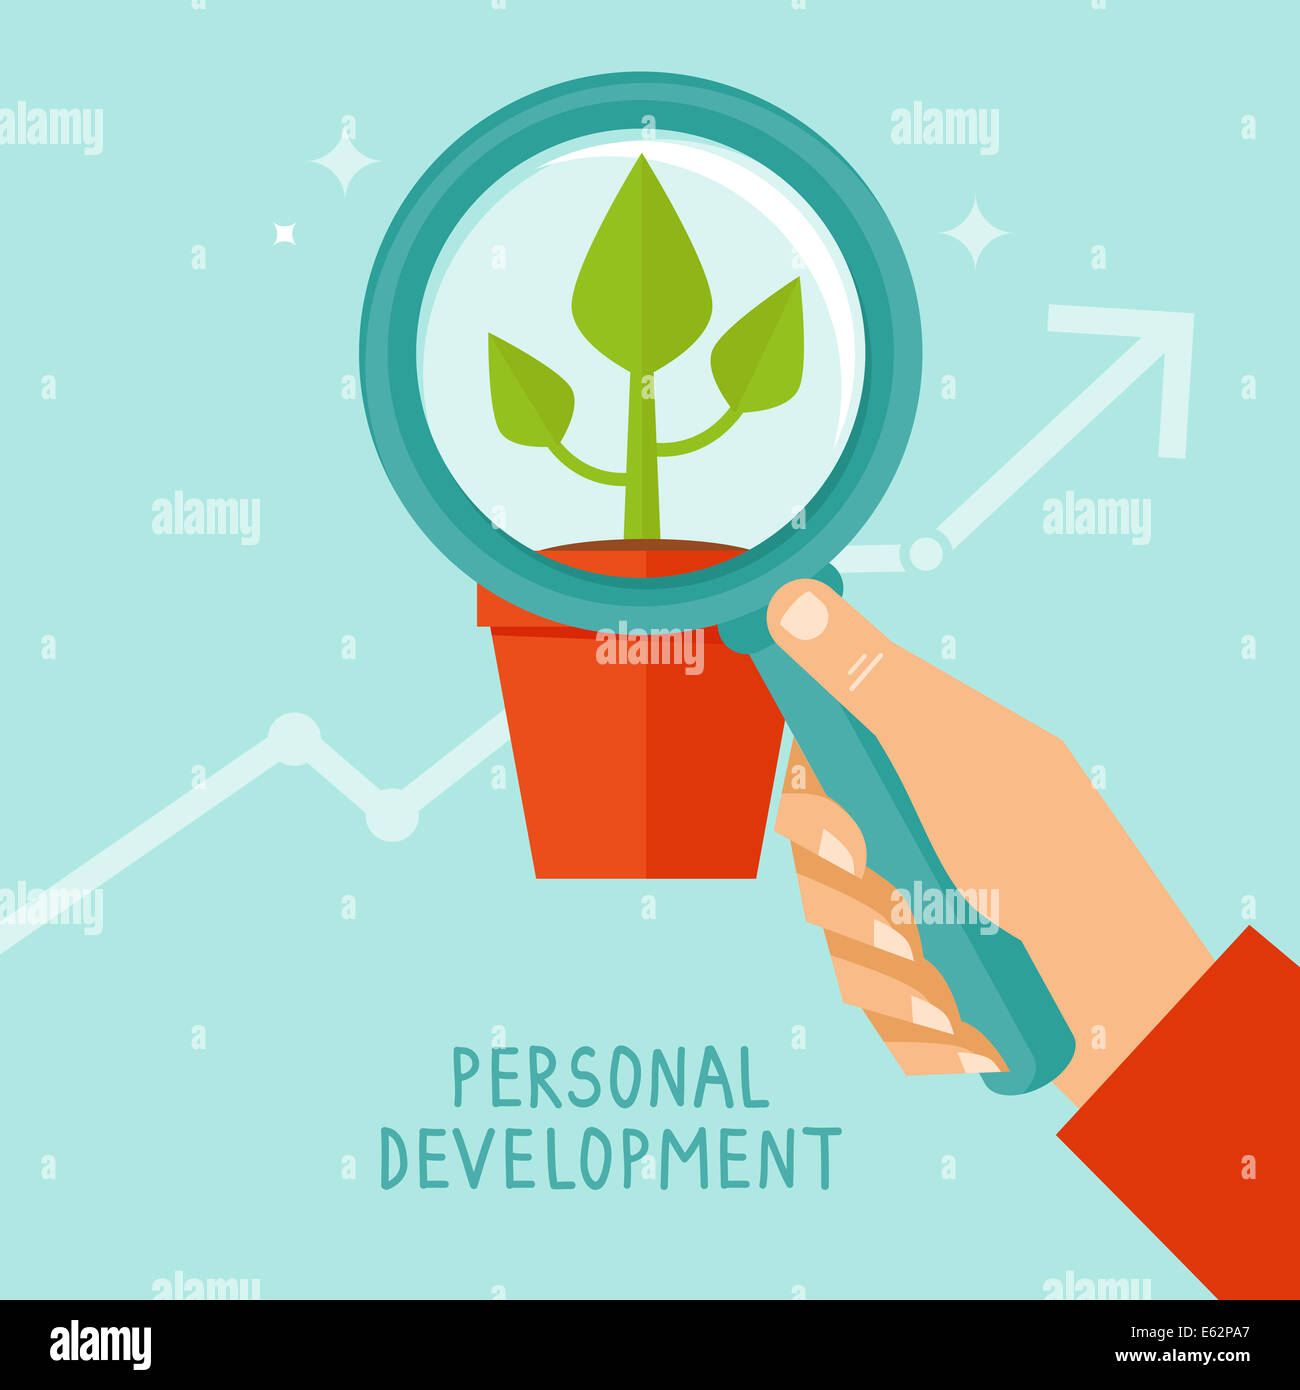 Personal development concept in flat style - infographic design elements and icons - Stock Image